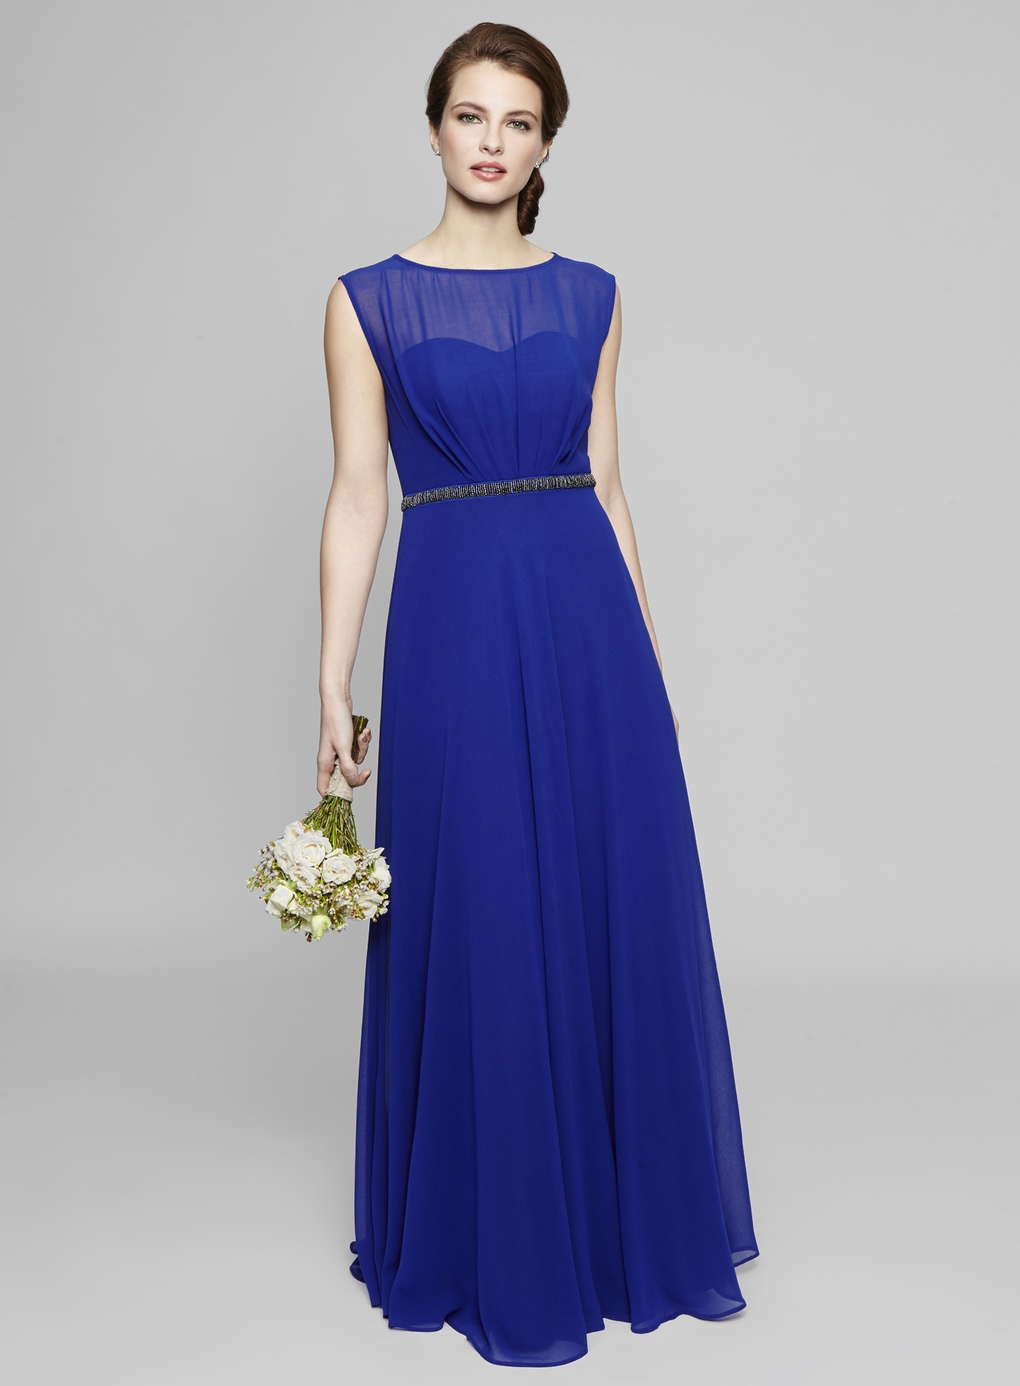 bateau neck cap sleeved long royal blue chiffon bridesmaid